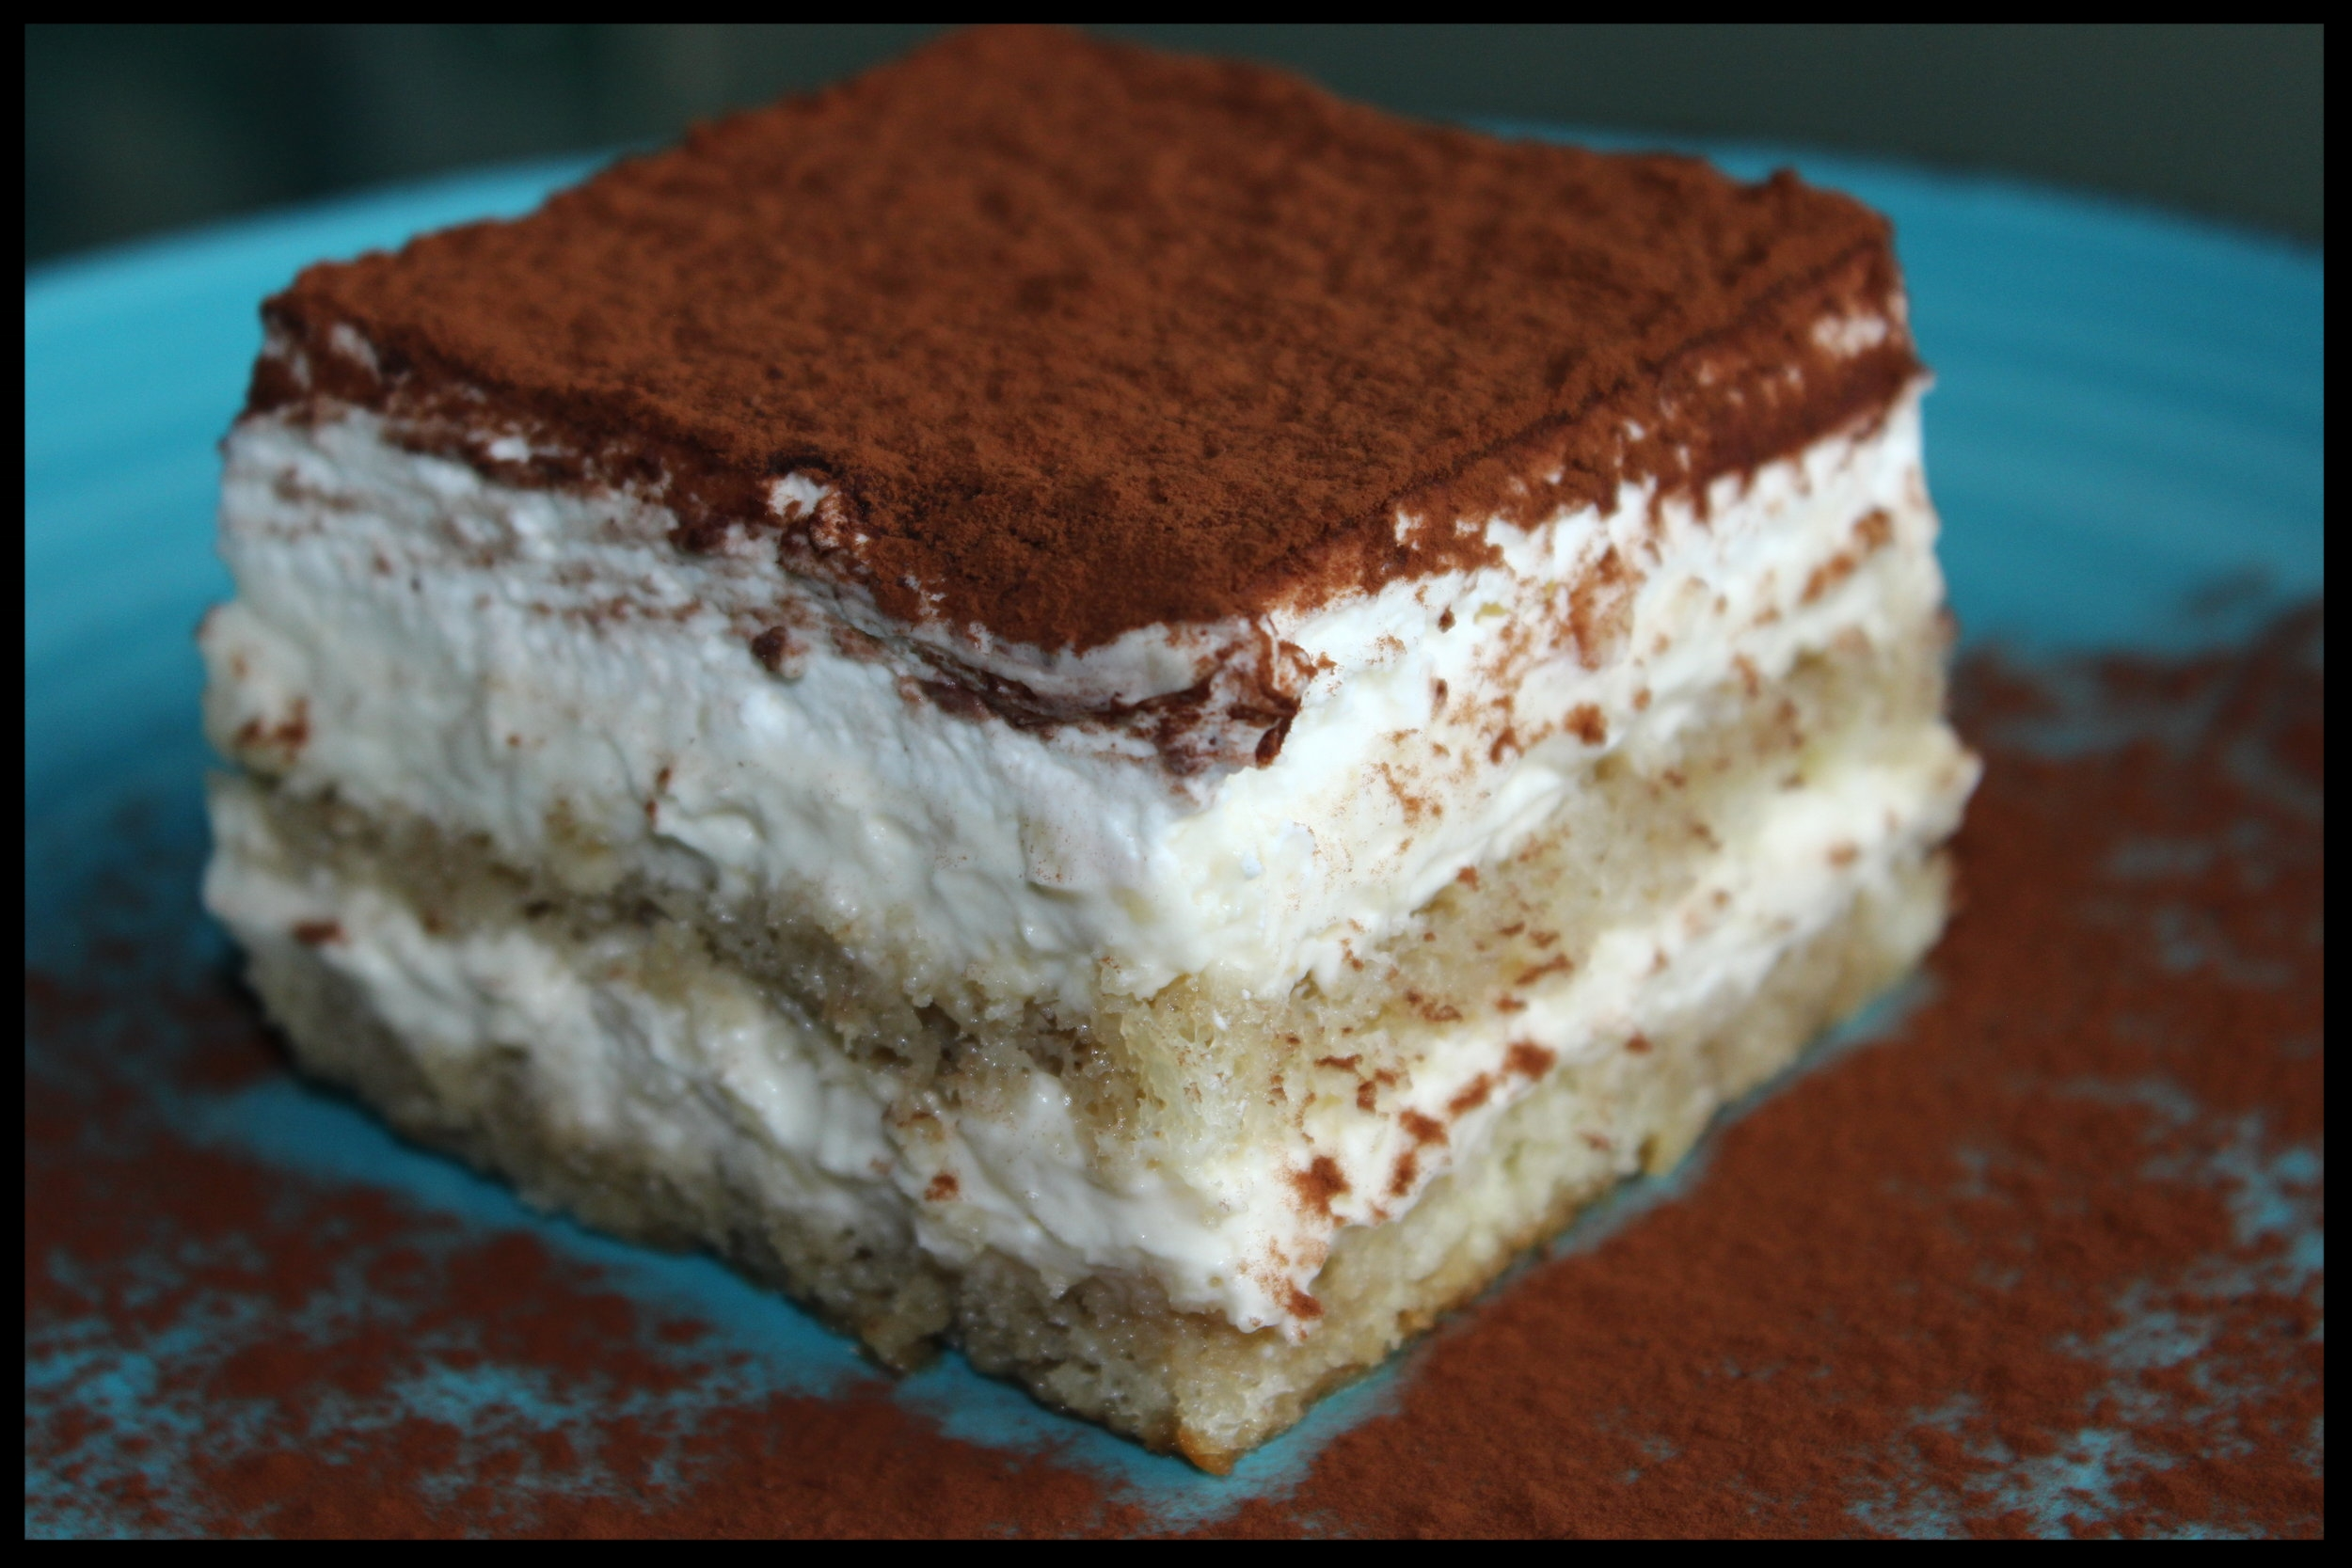 Tiramisu - Our tiramisu is sponge cake soaked in brandy and espresso, with a filling made with marsala wine, topped with whipped cream and cocoa.